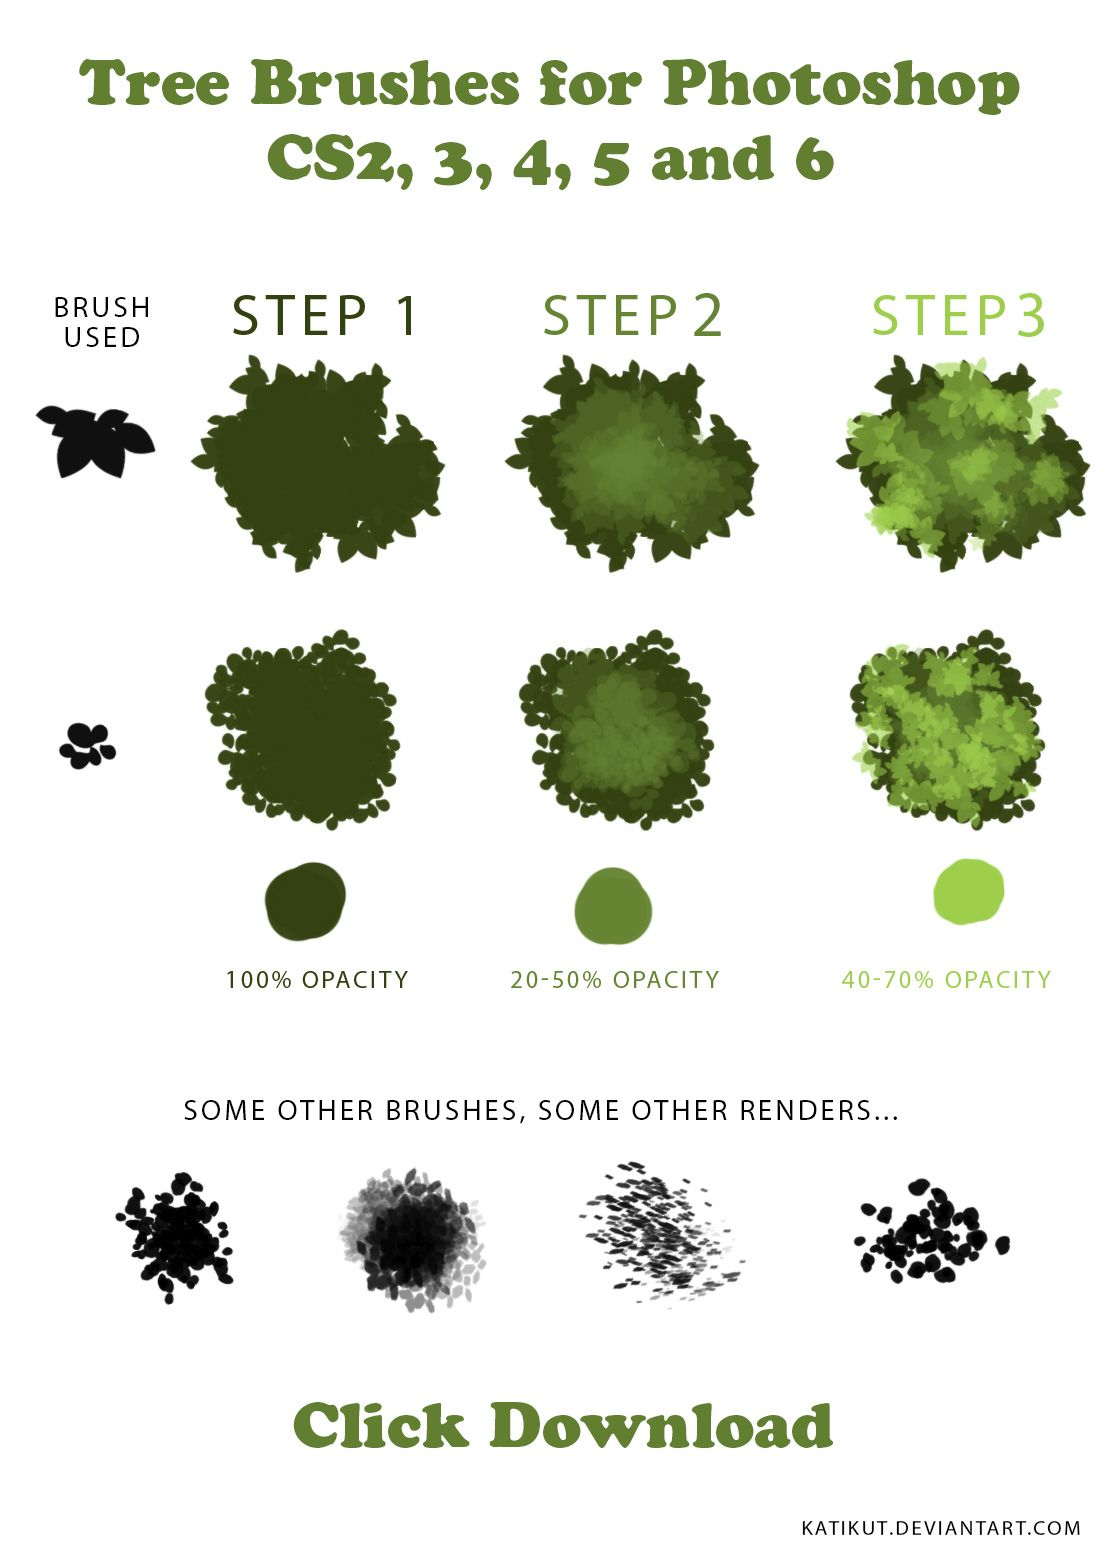 Tree Brushes Tutorial and Downloadable Brushes by